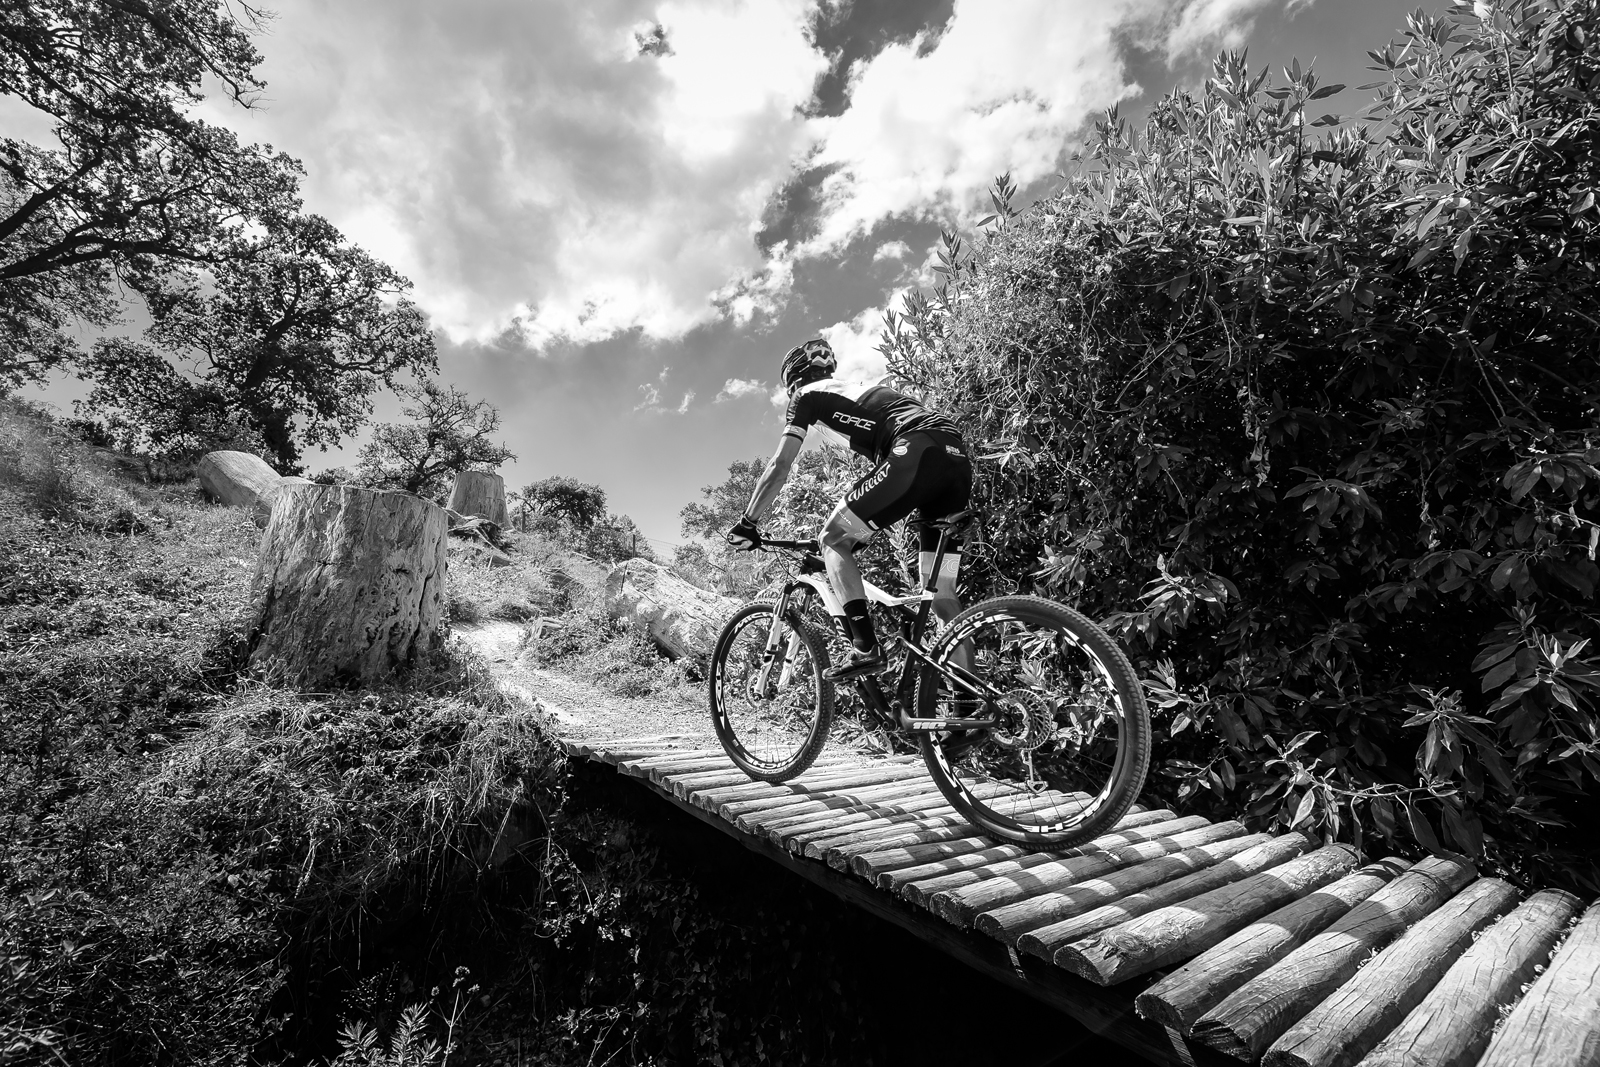 10 Suggestions to keep your mtb in tip-top shape